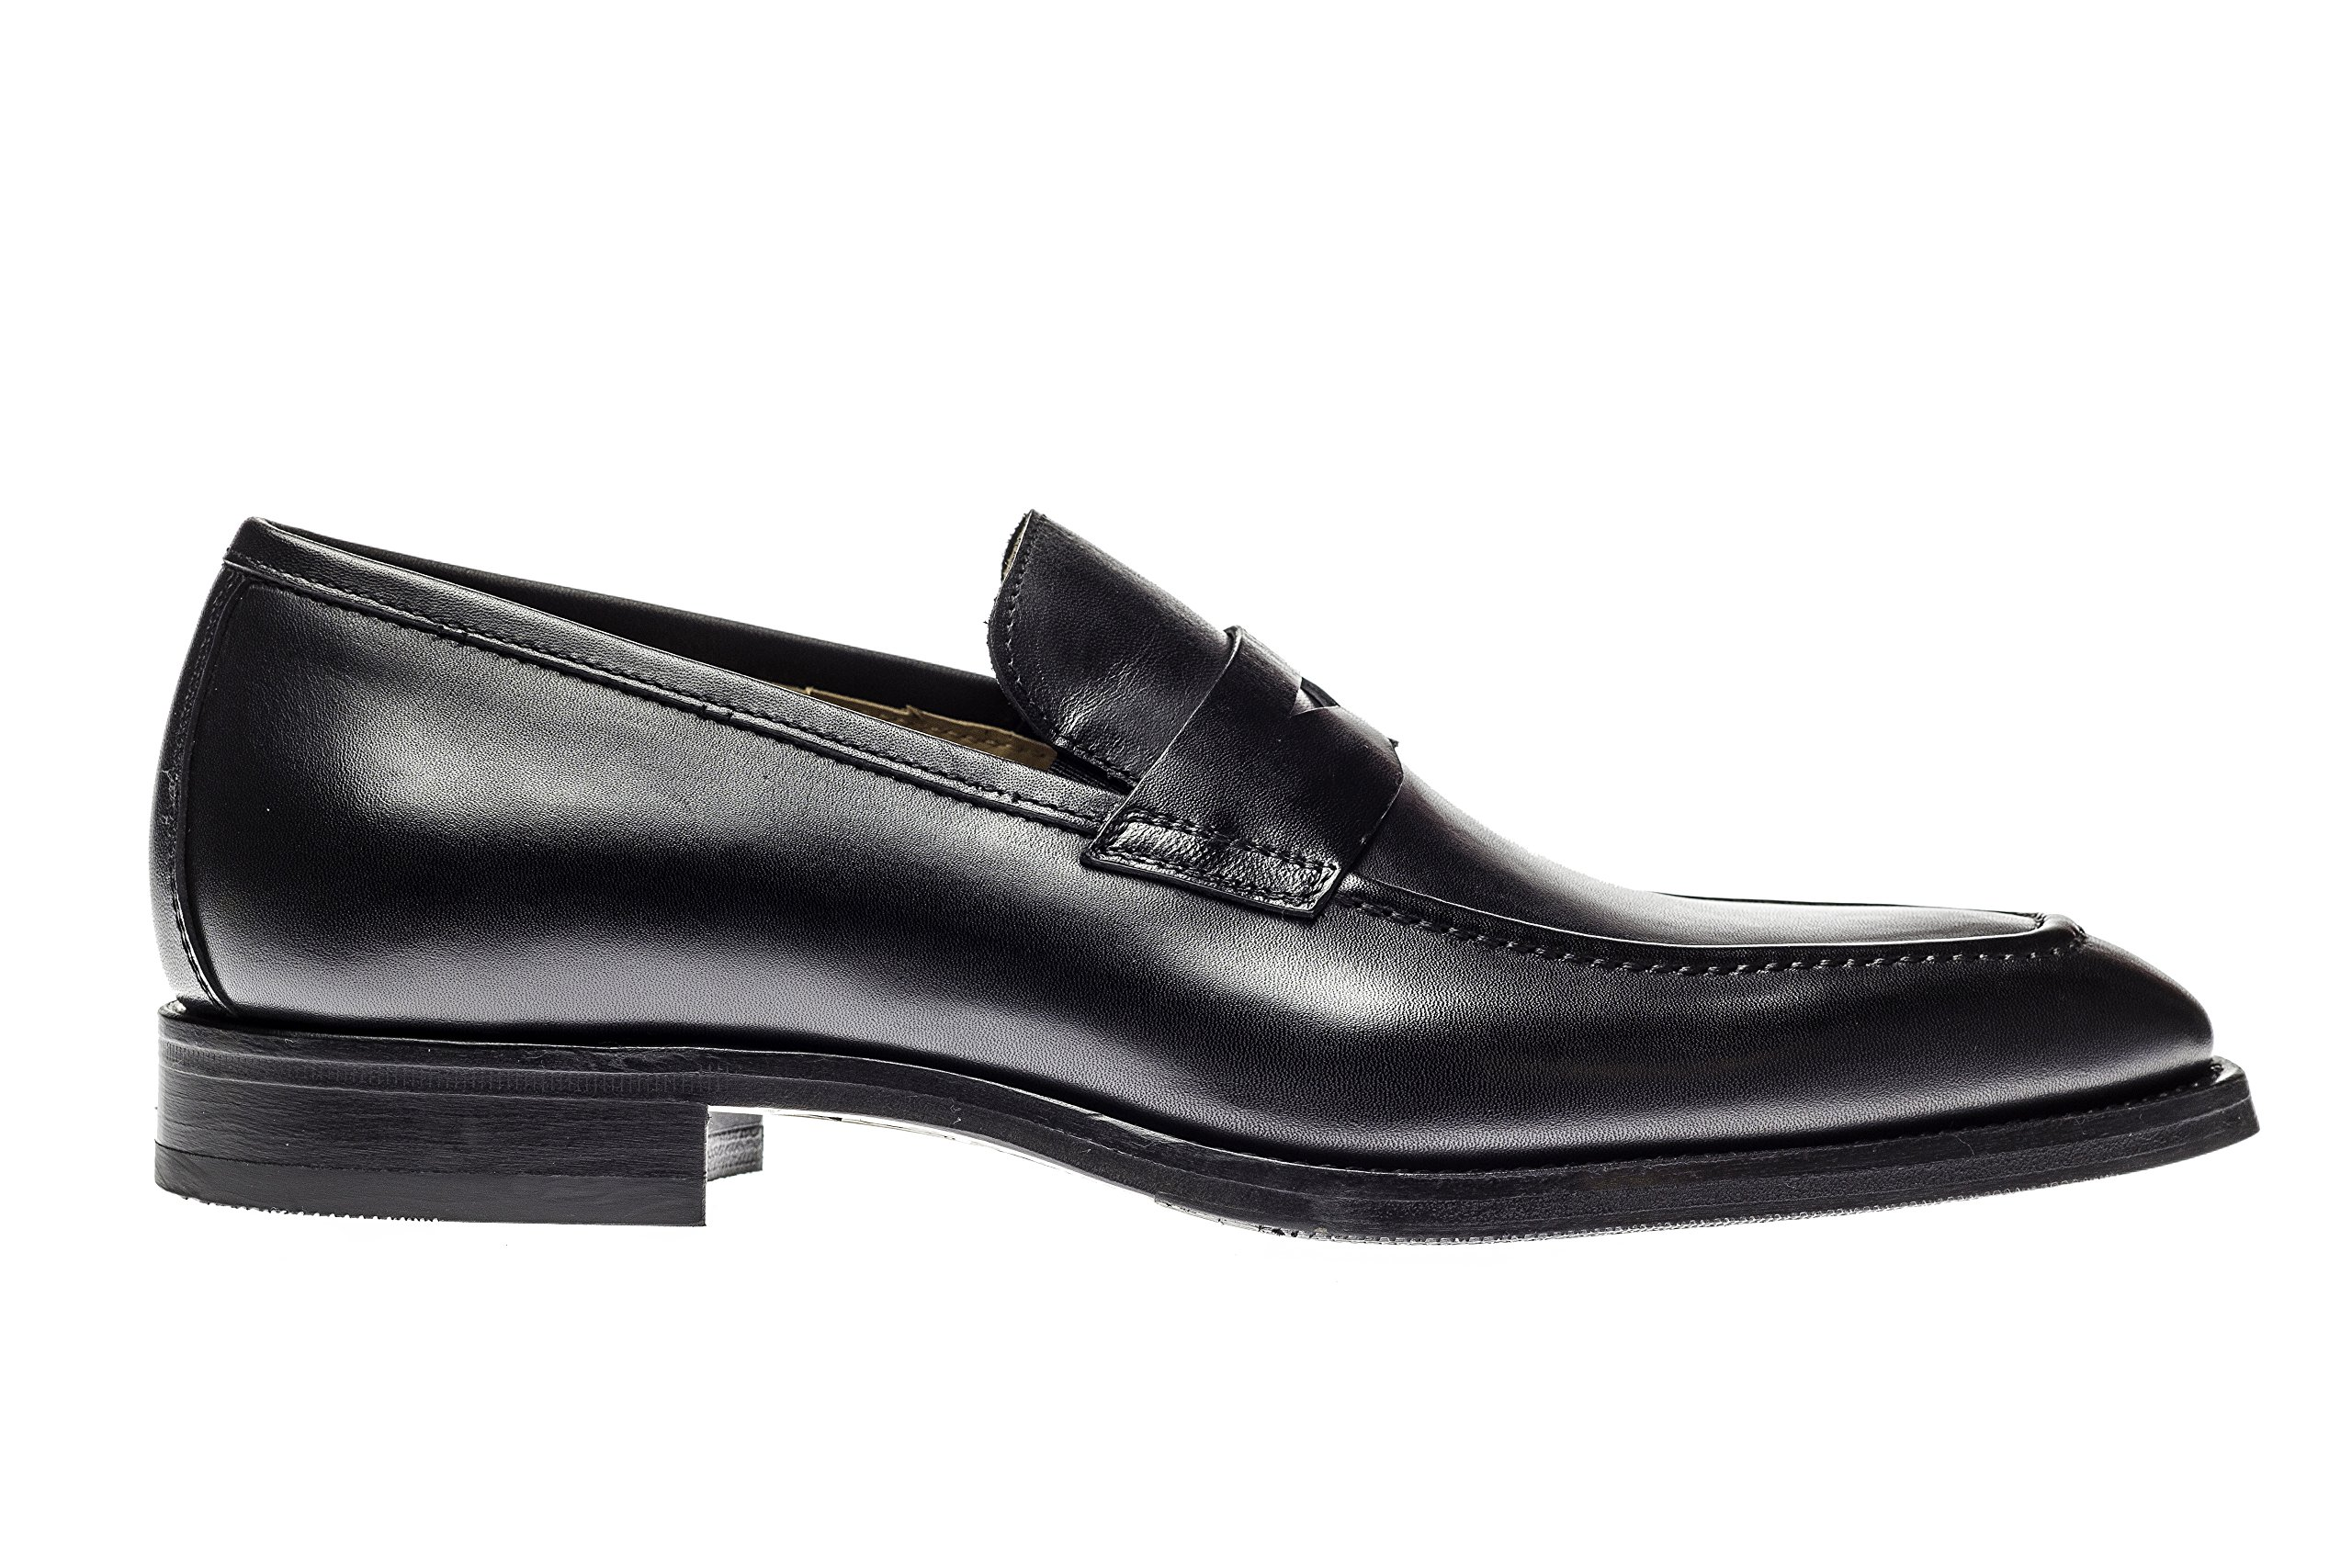 Jose Real Shoes Amberes Collection | Mens Loafer Black Genuine Real Italian Baby Calf Leather Dress Shoe | Size EU 42